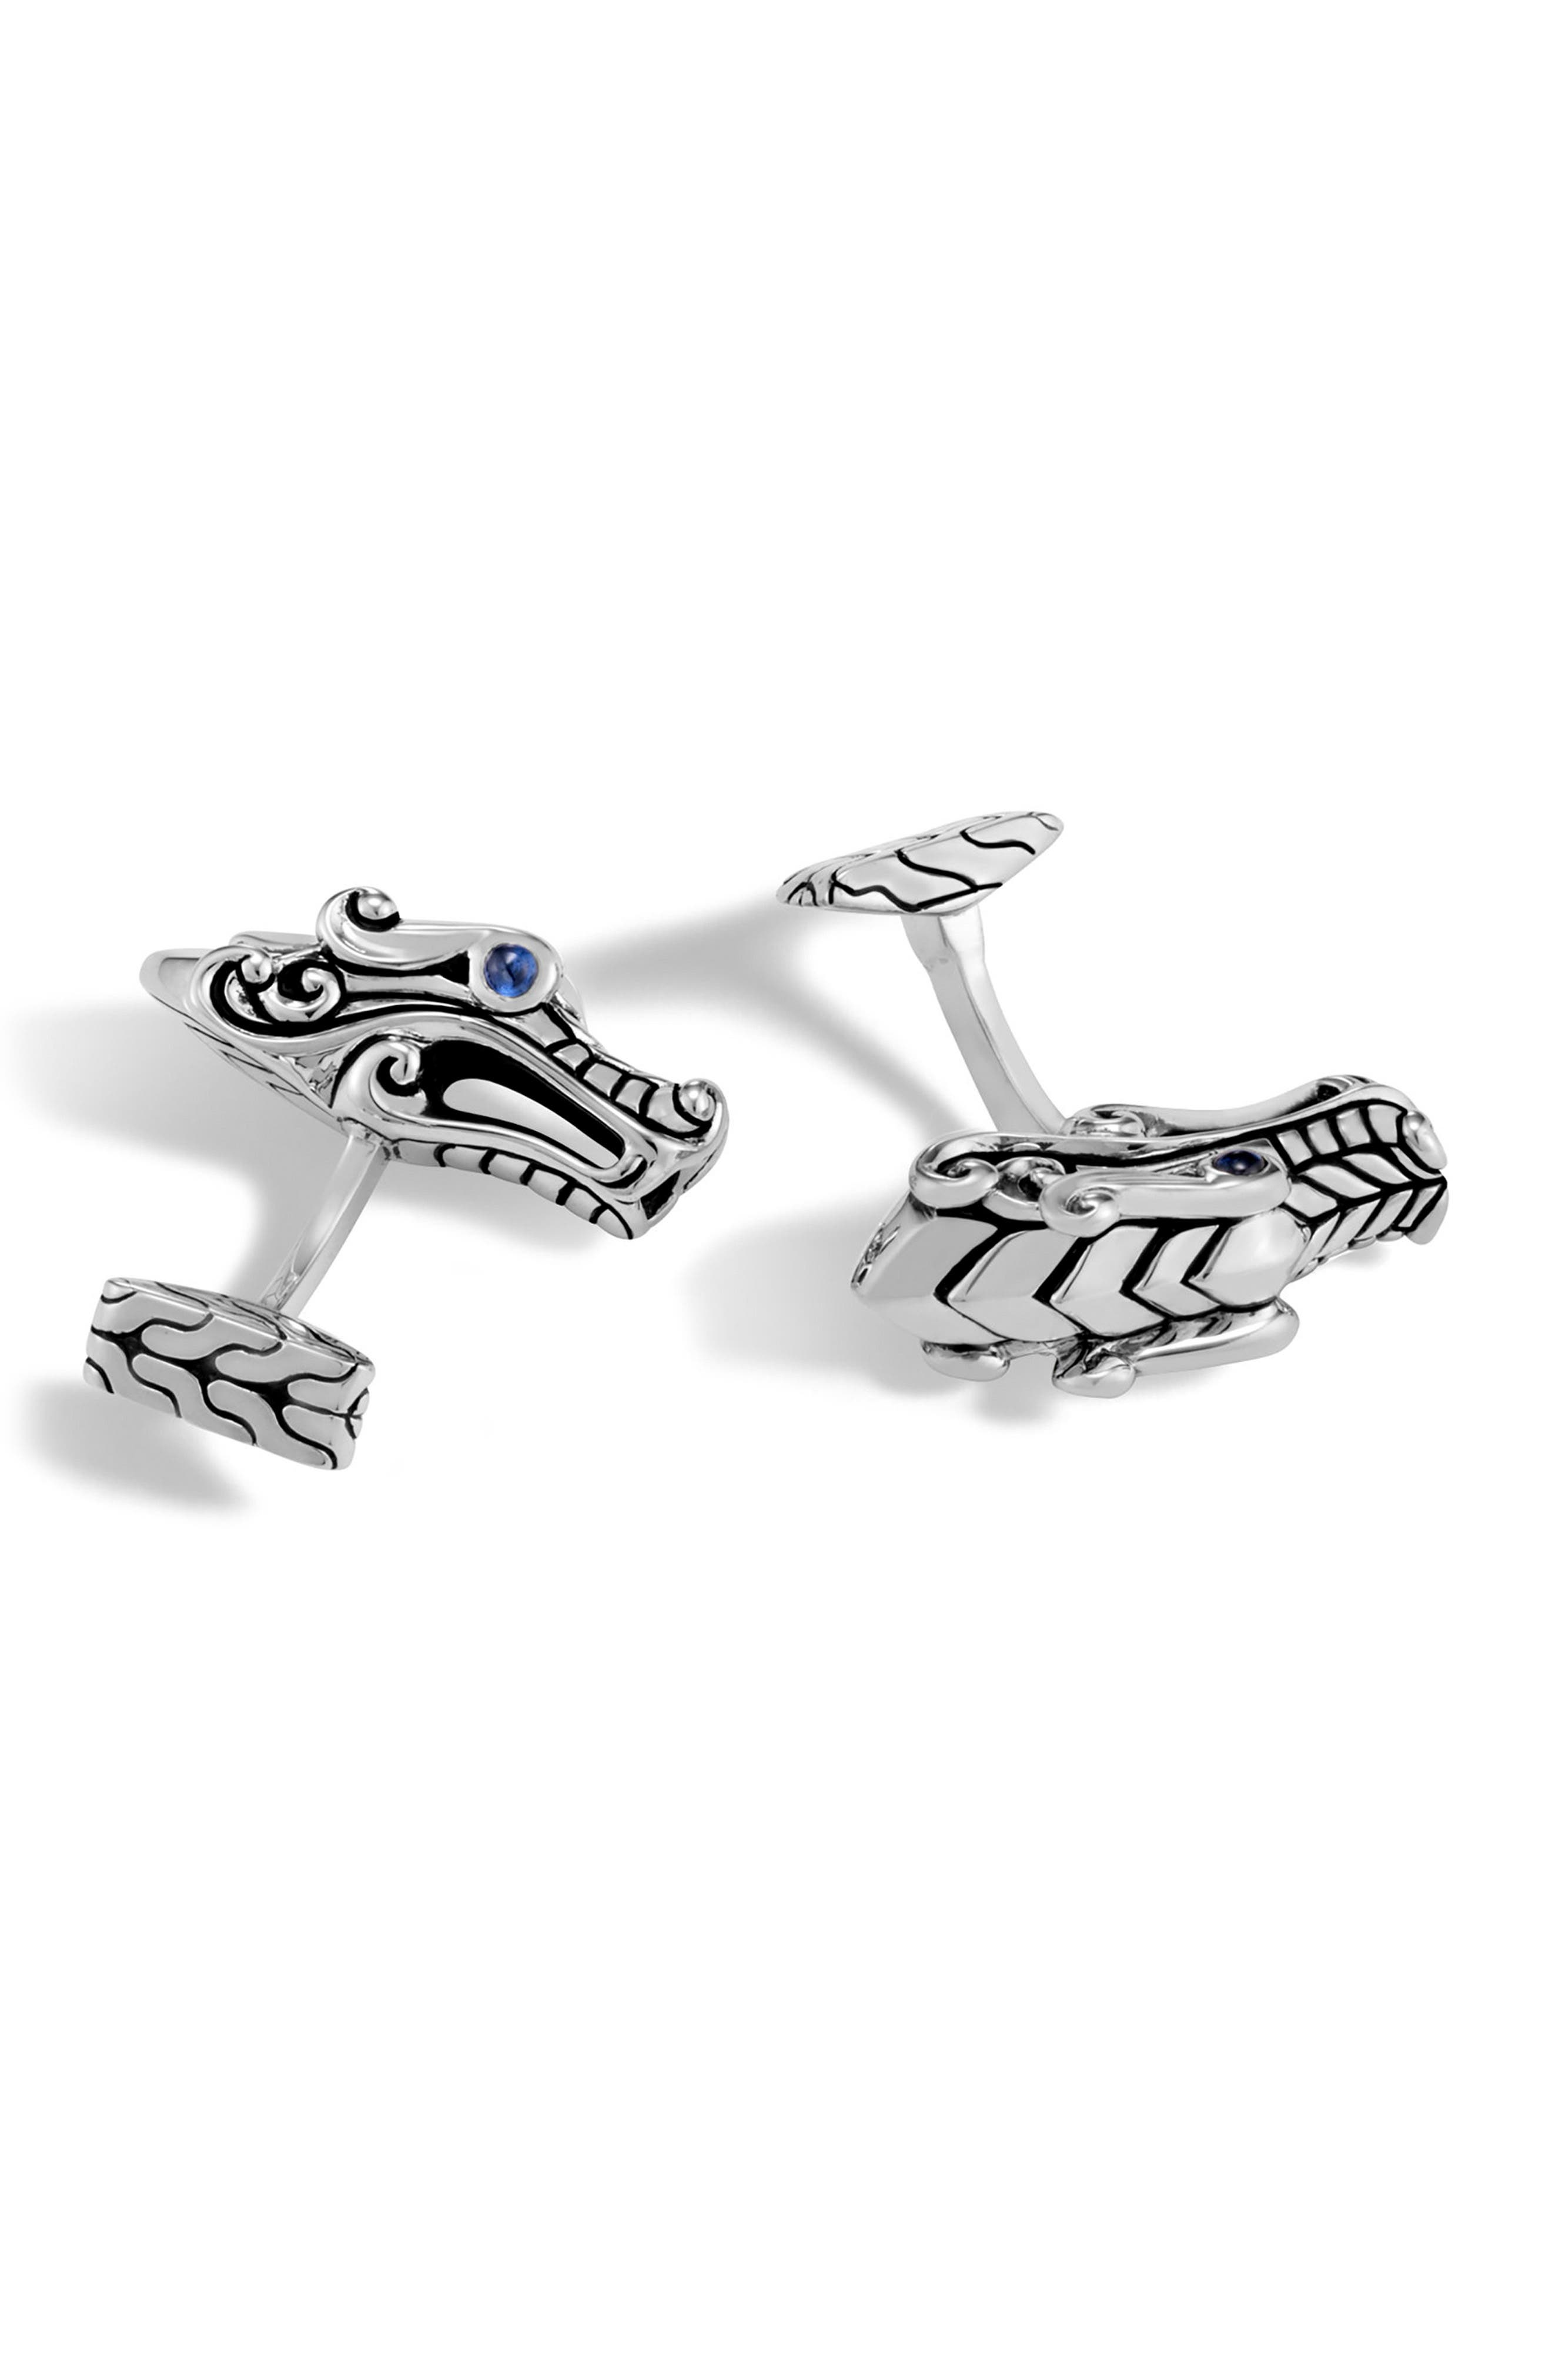 Legends Naga Cuff Links,                             Main thumbnail 1, color,                             040